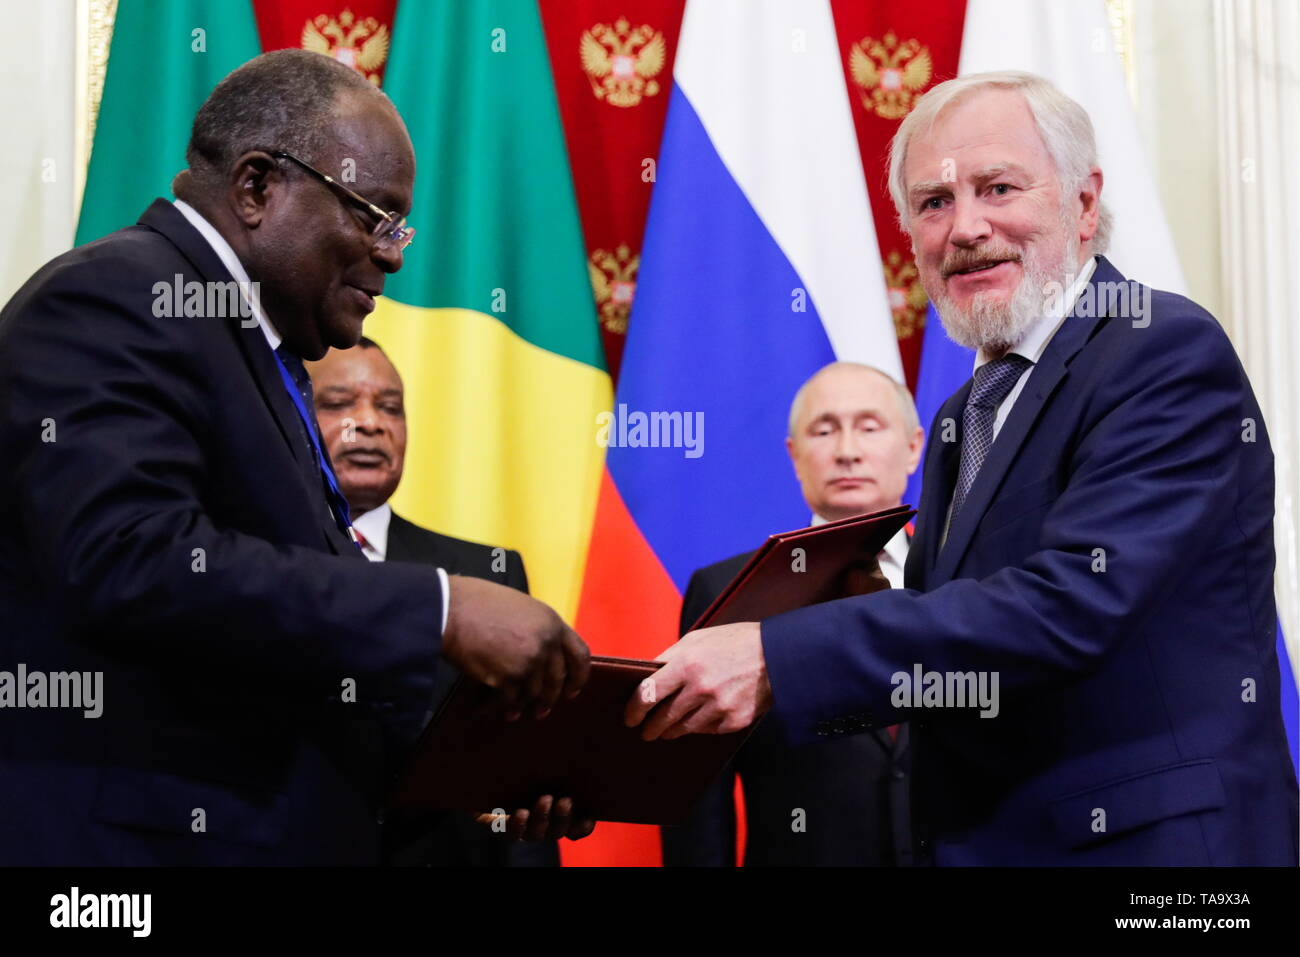 Moscow, Russia. 23rd May, 2019. MOSCOW, RUSSIA - MAY 23, 2019: Russia's Deputy Finance Minister Sergei Storchak (R front) shakes hands with a Congolese official at a ceremony attended by Denis Sassou Nguesso, President of the Republic of Congo, and Russia's President Vladimir Putin (L-R back) to sign joint documents on Russian-Congolese talks at the Moscow Kremlin. Mikhail Klimentyev/Russian Presidential Press and Information Office/TASS Credit: ITAR-TASS News Agency/Alamy Live News - Stock Image